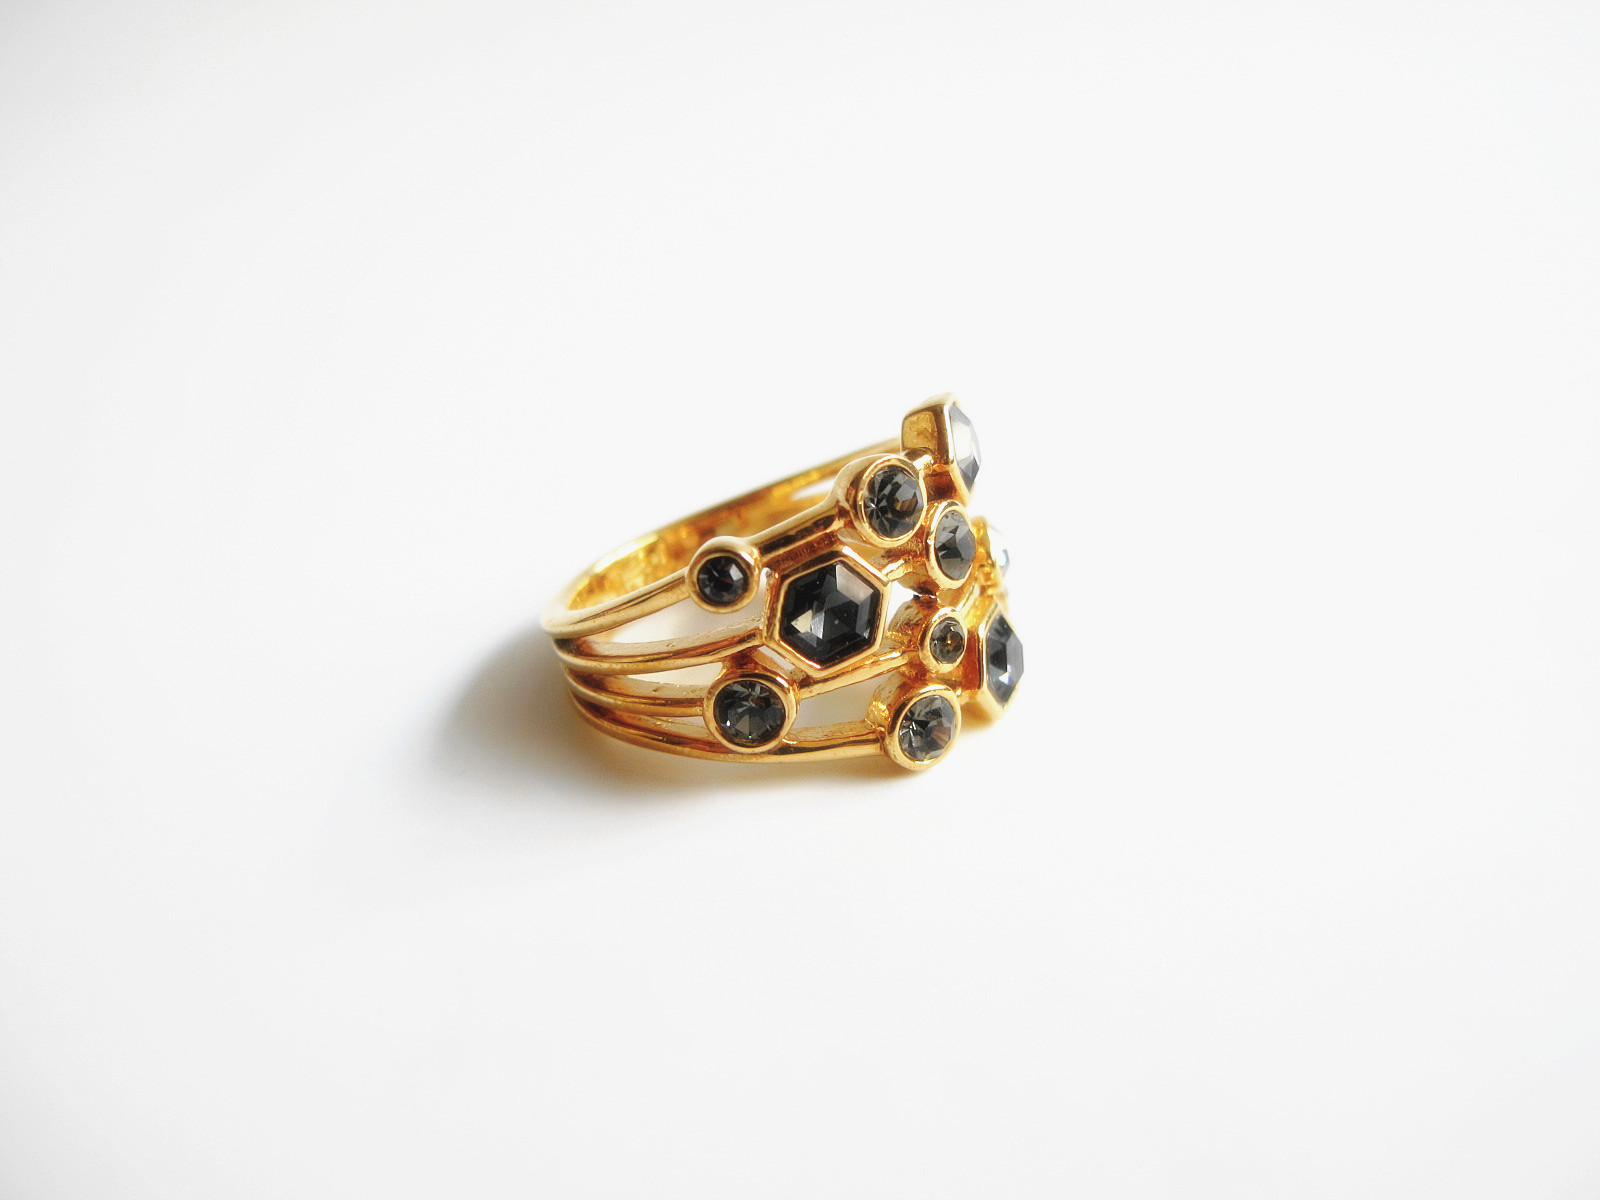 European and American light luxury style inlaid with black gem gold ring index finger ring